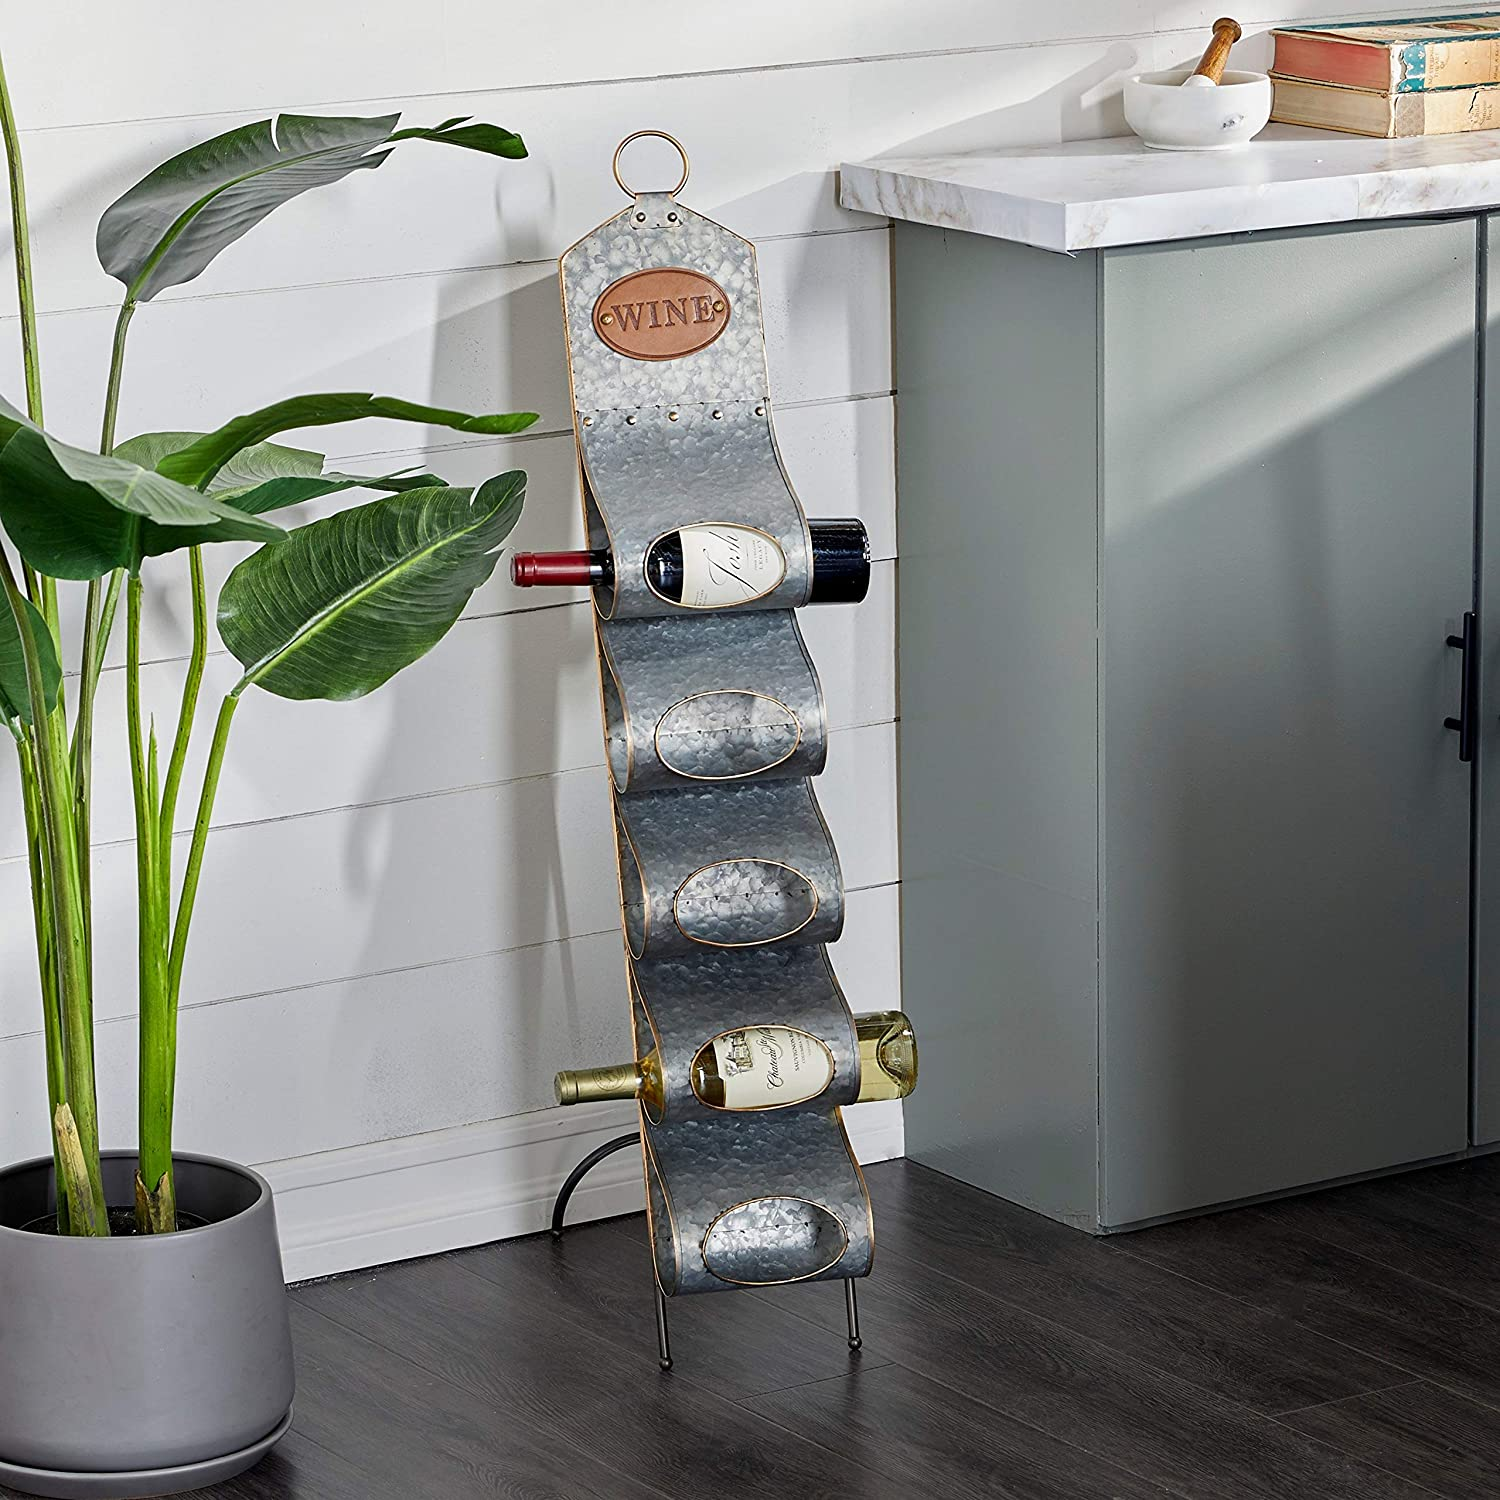 Unknown1 Grey Metal Contemporary Standing San Diego Mall Wine Mo 7 40 17 Max 59% OFF X Rack